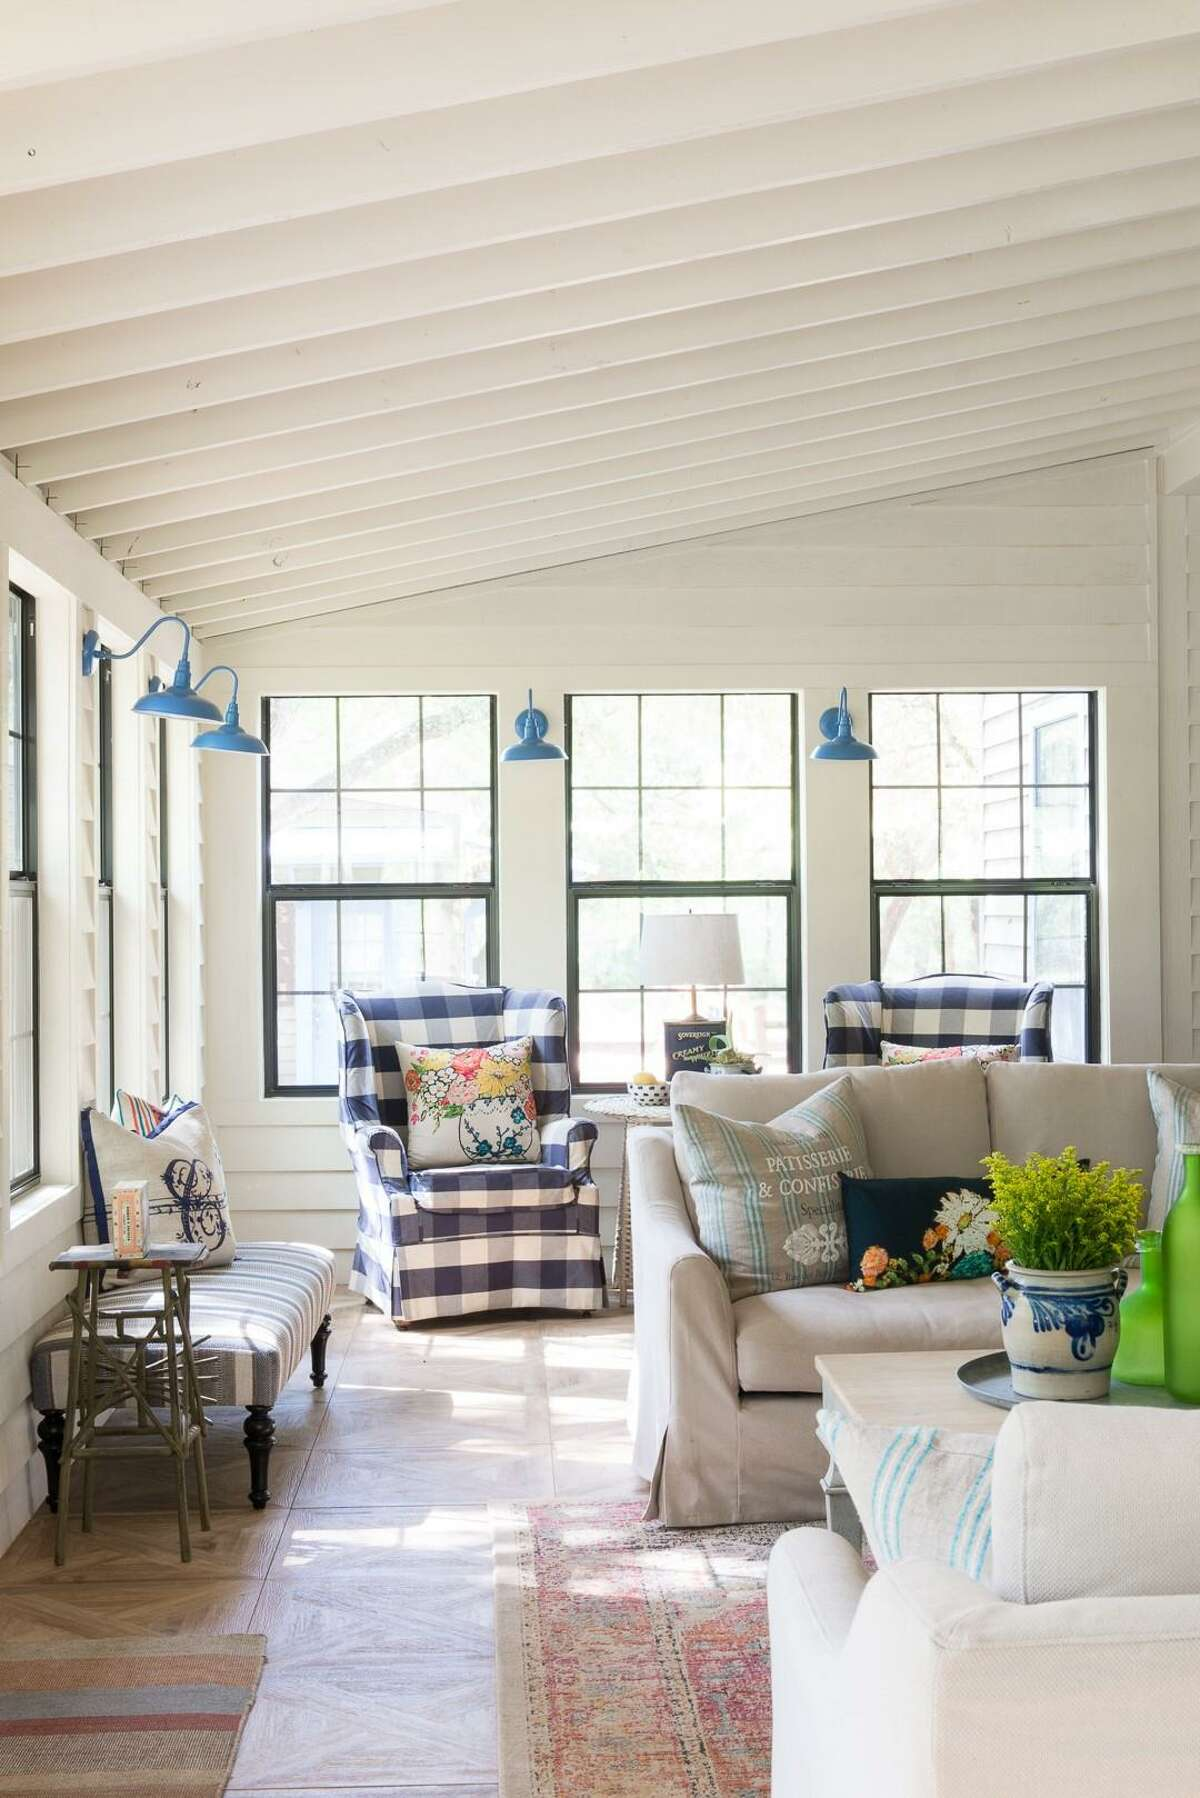 Rooms with low ceilings can feel larger if you remove the ceiling and let the roofline form the ceiling of a home or room.